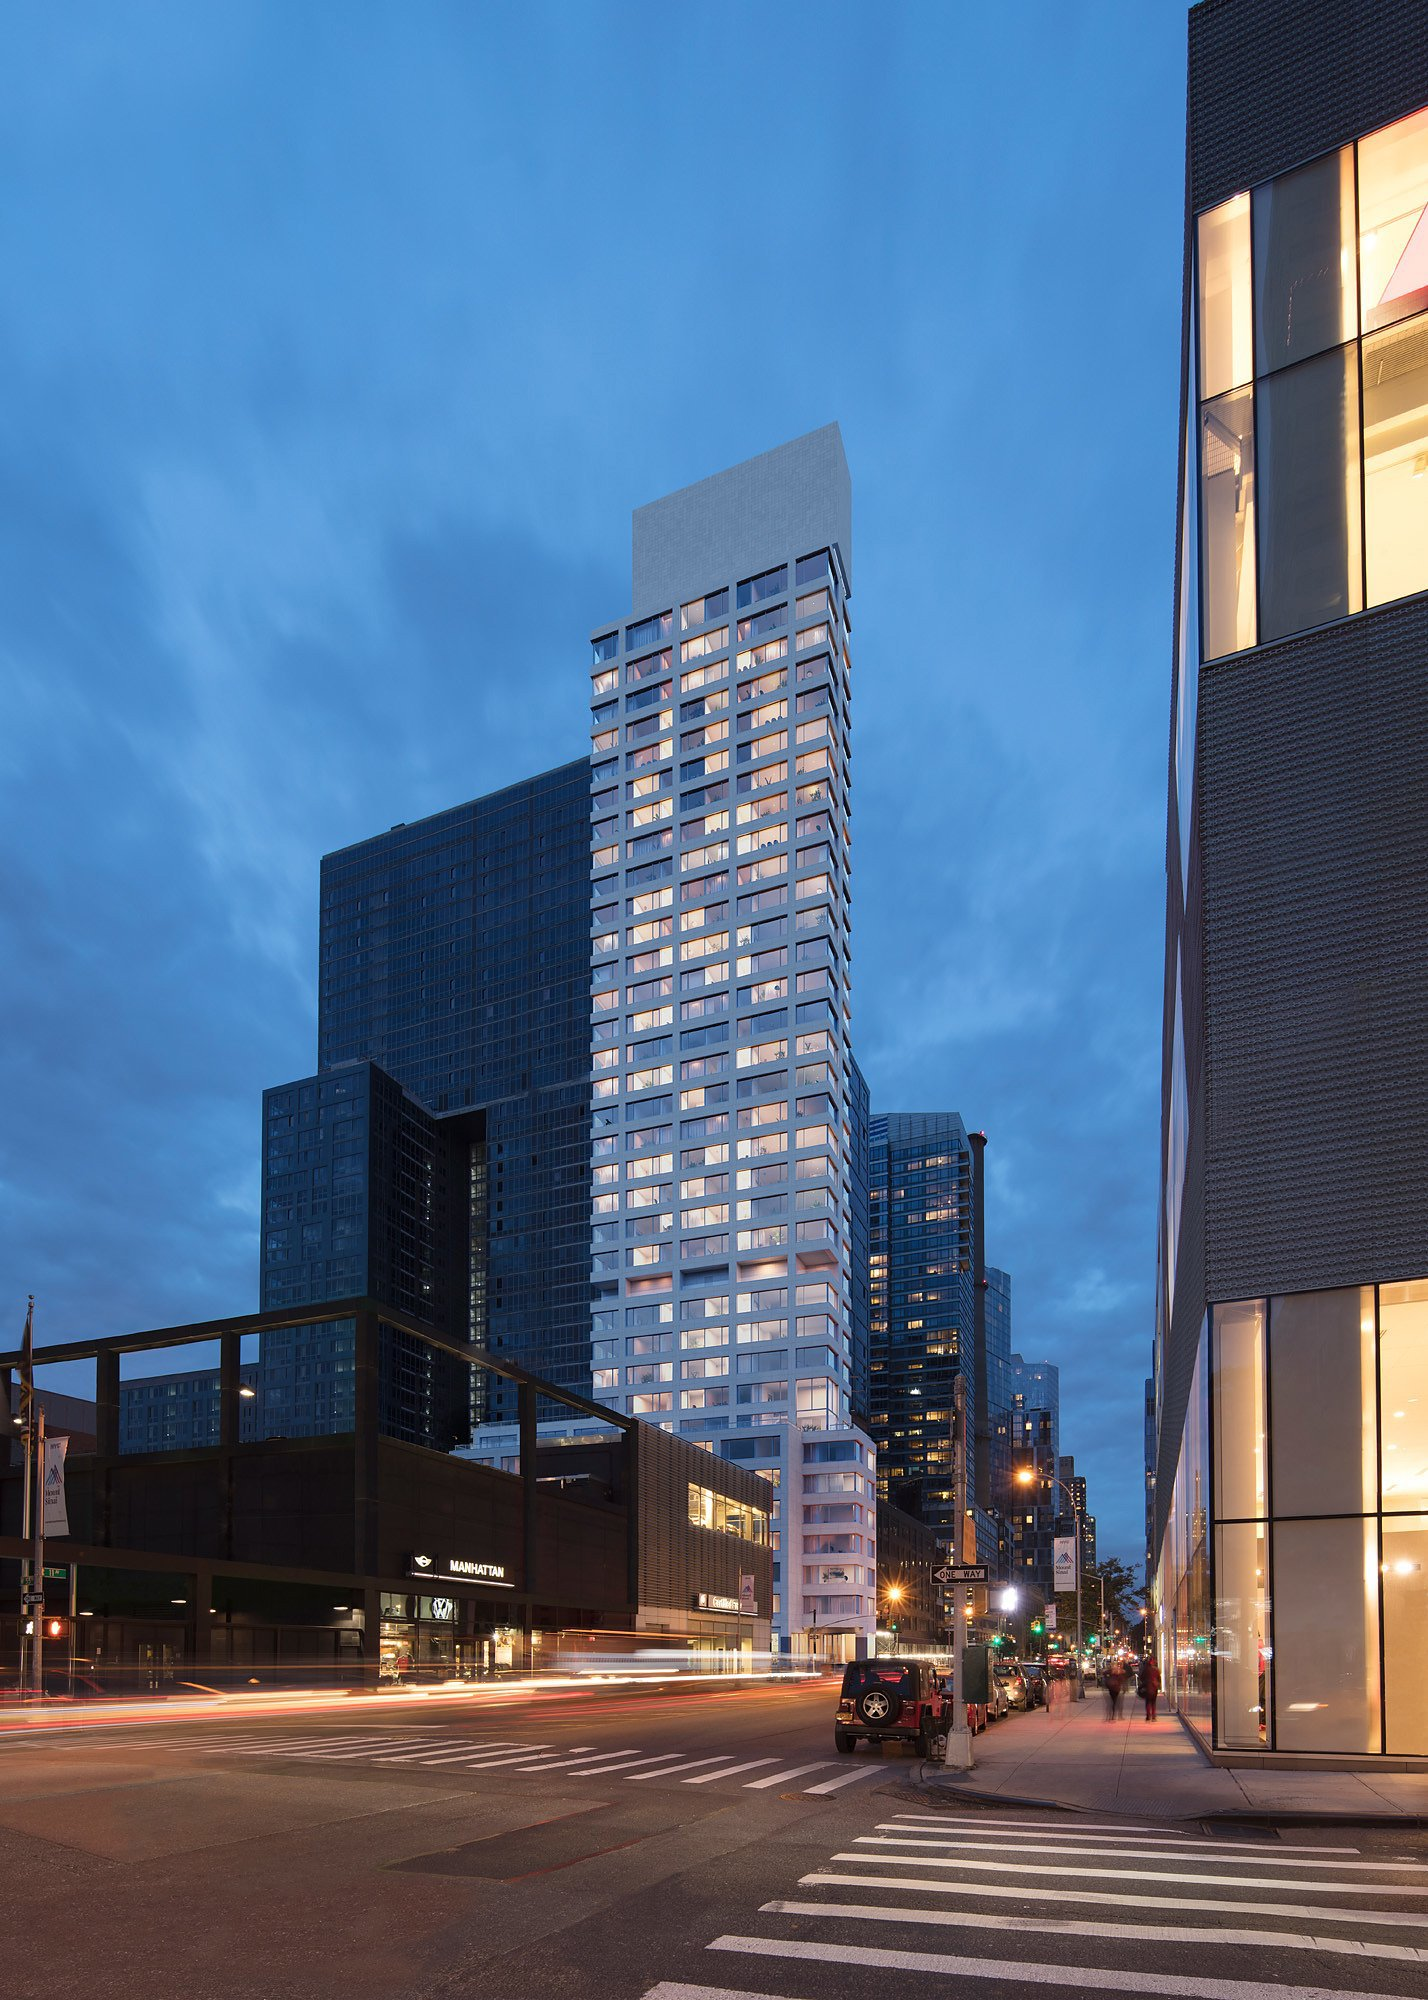 193 Lvaro Siza S New York Tower 611 West 56th Street Fully